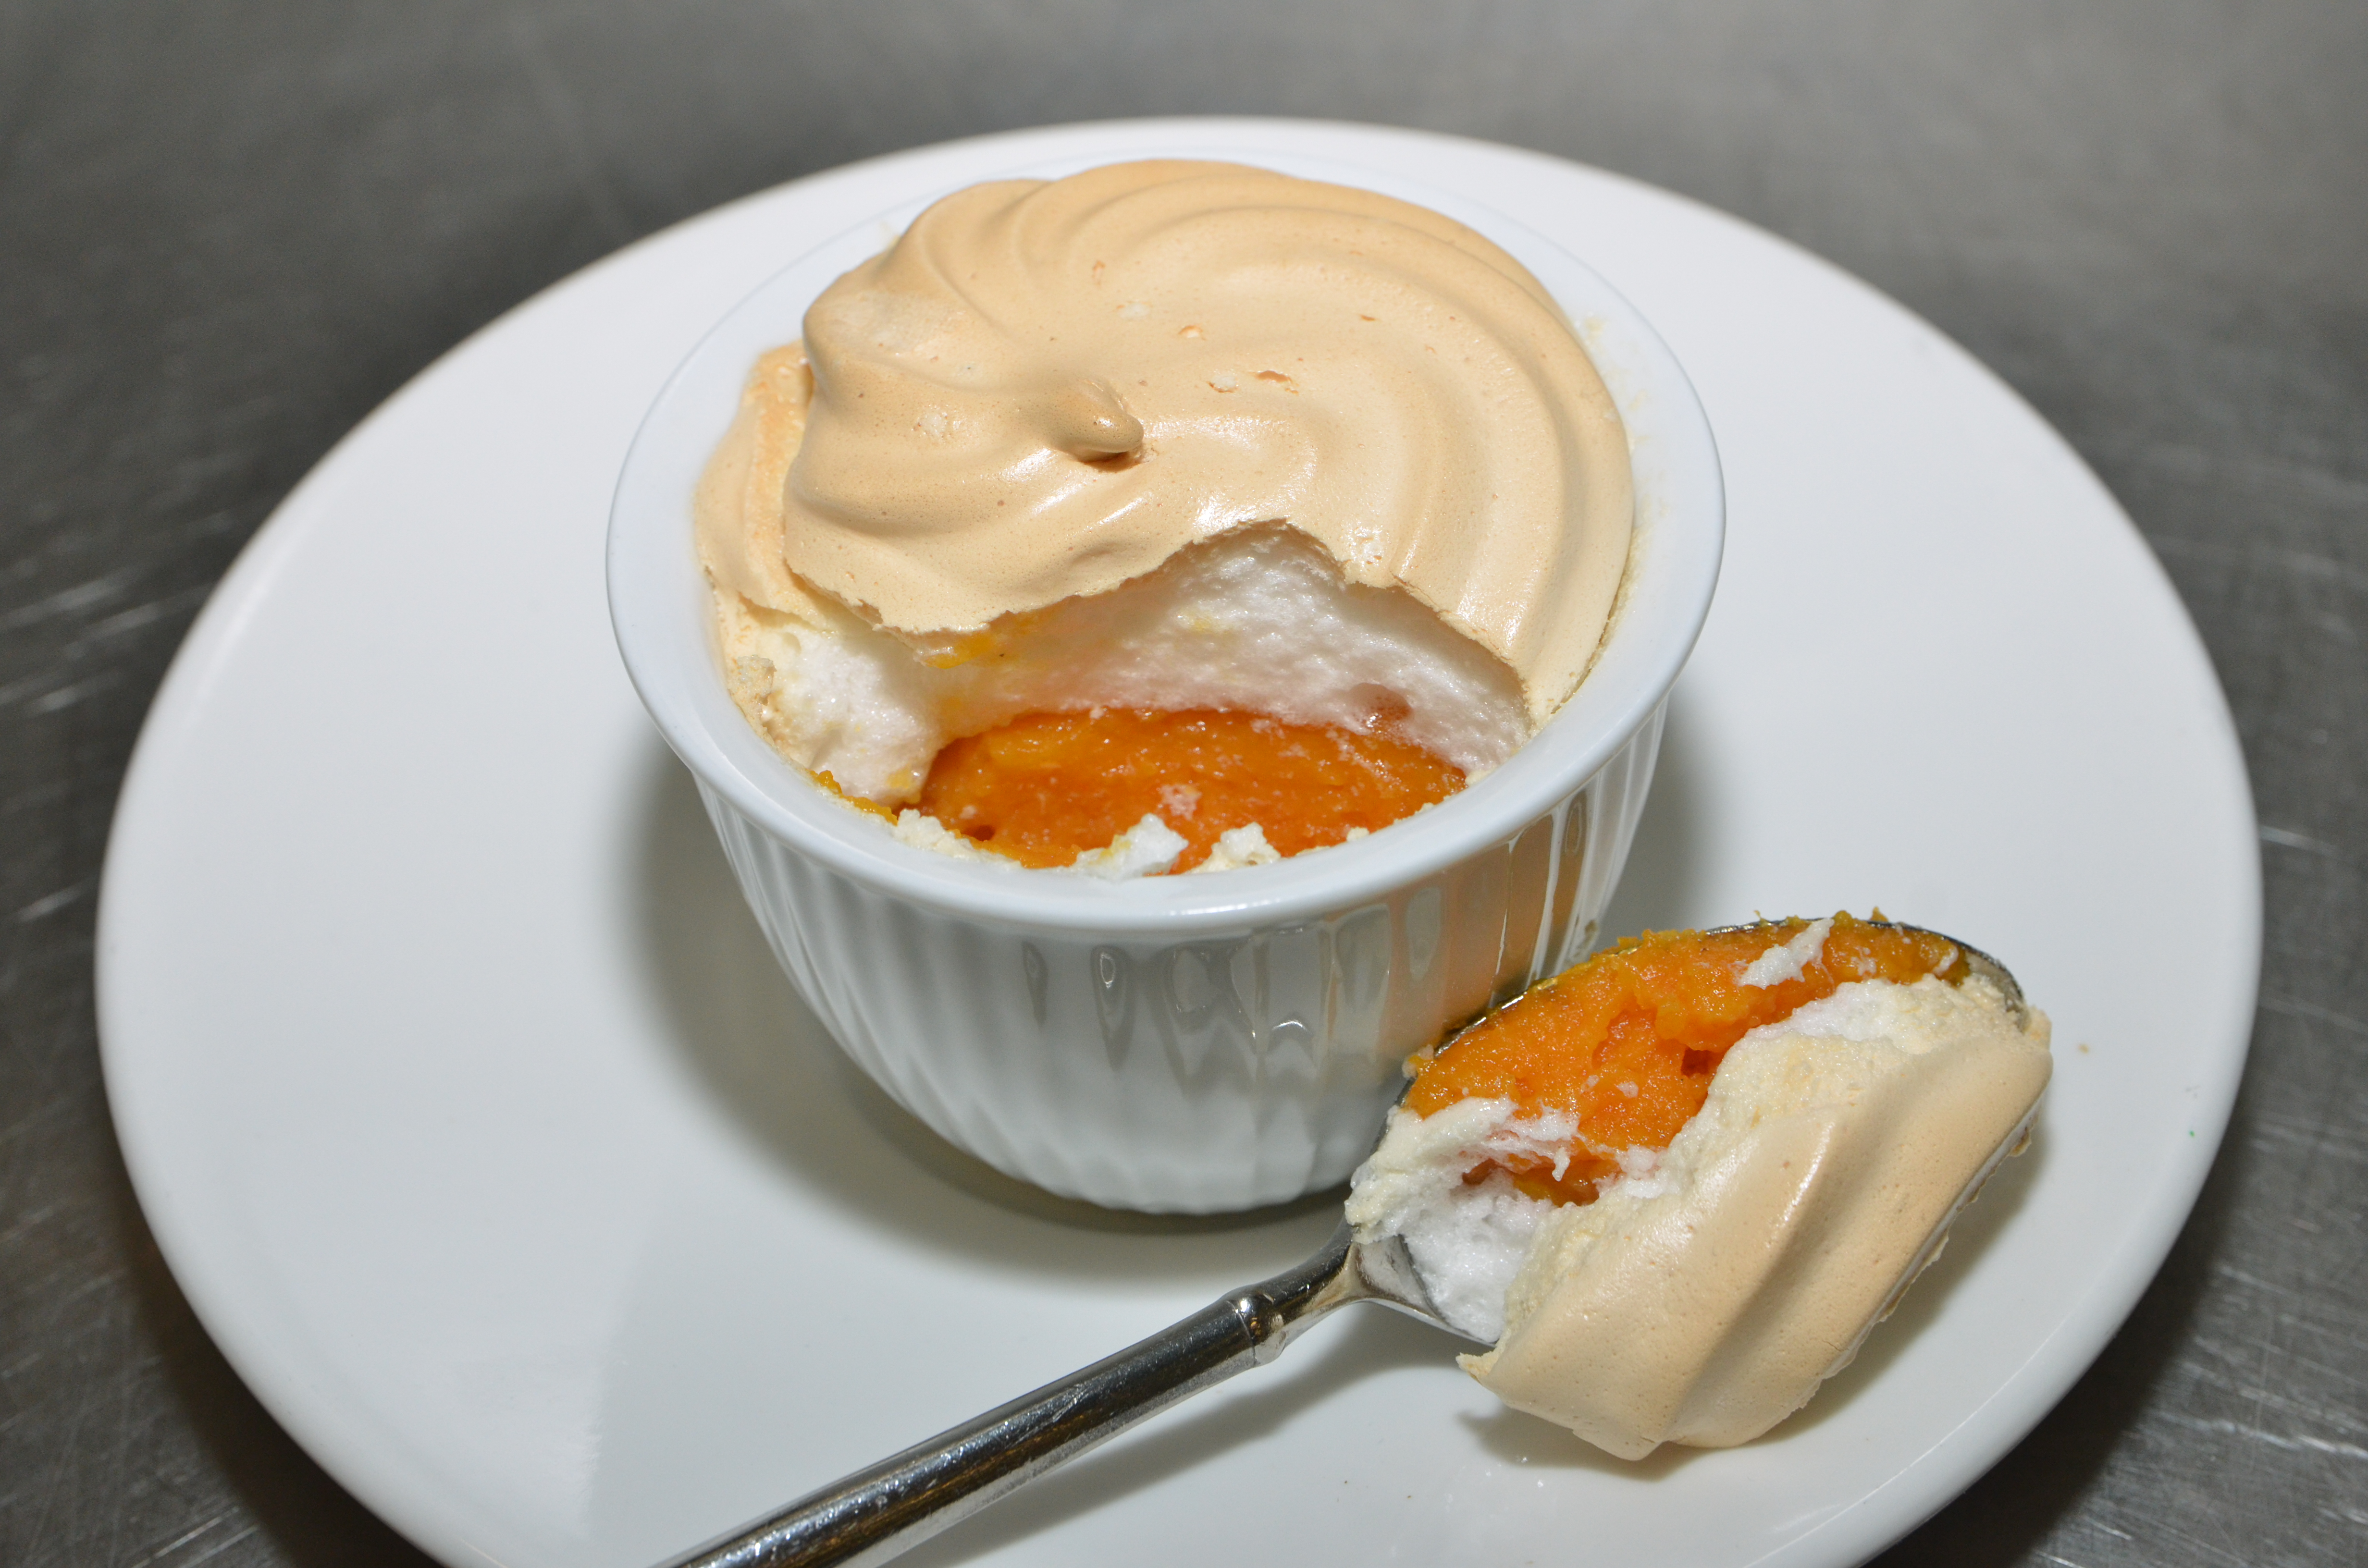 Butternut Squash topped with homemade marshmallow